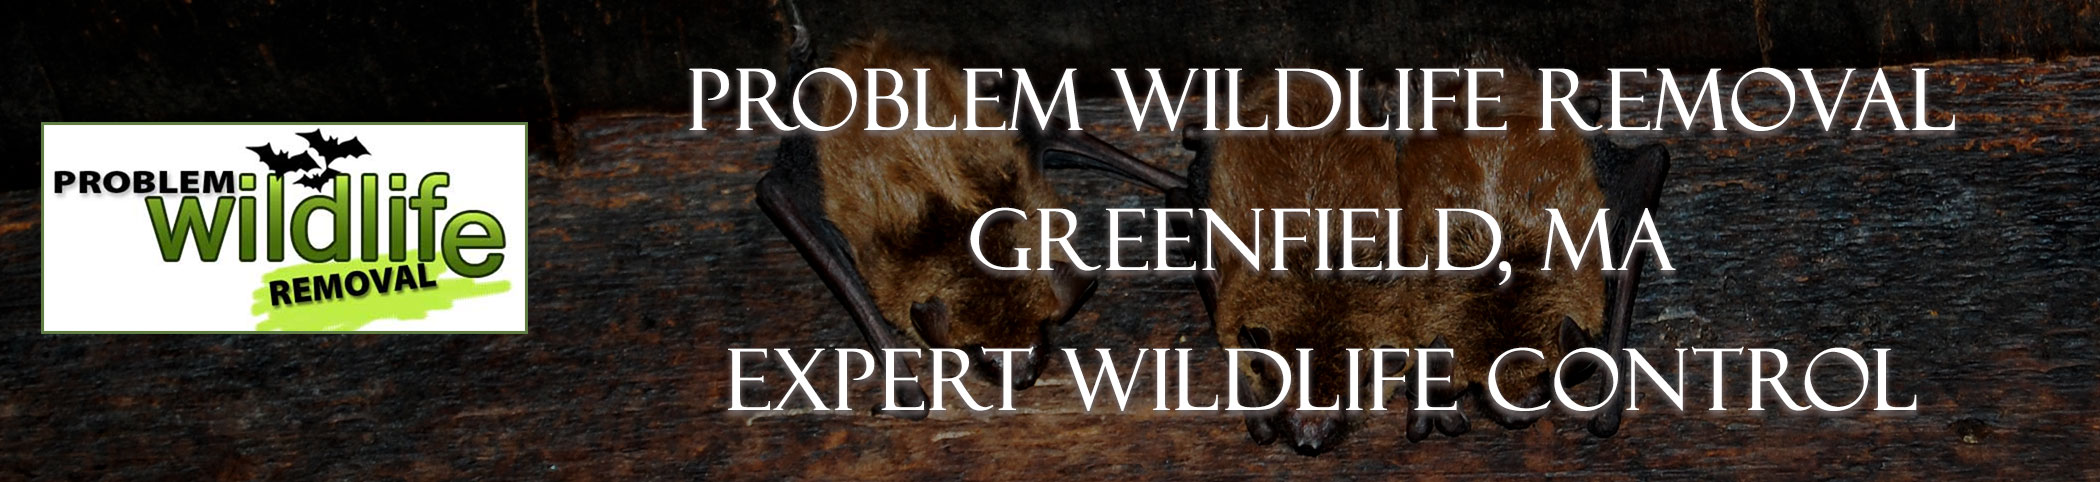 bat removal and bat exclusion by problem wildlife removal greenfield ma